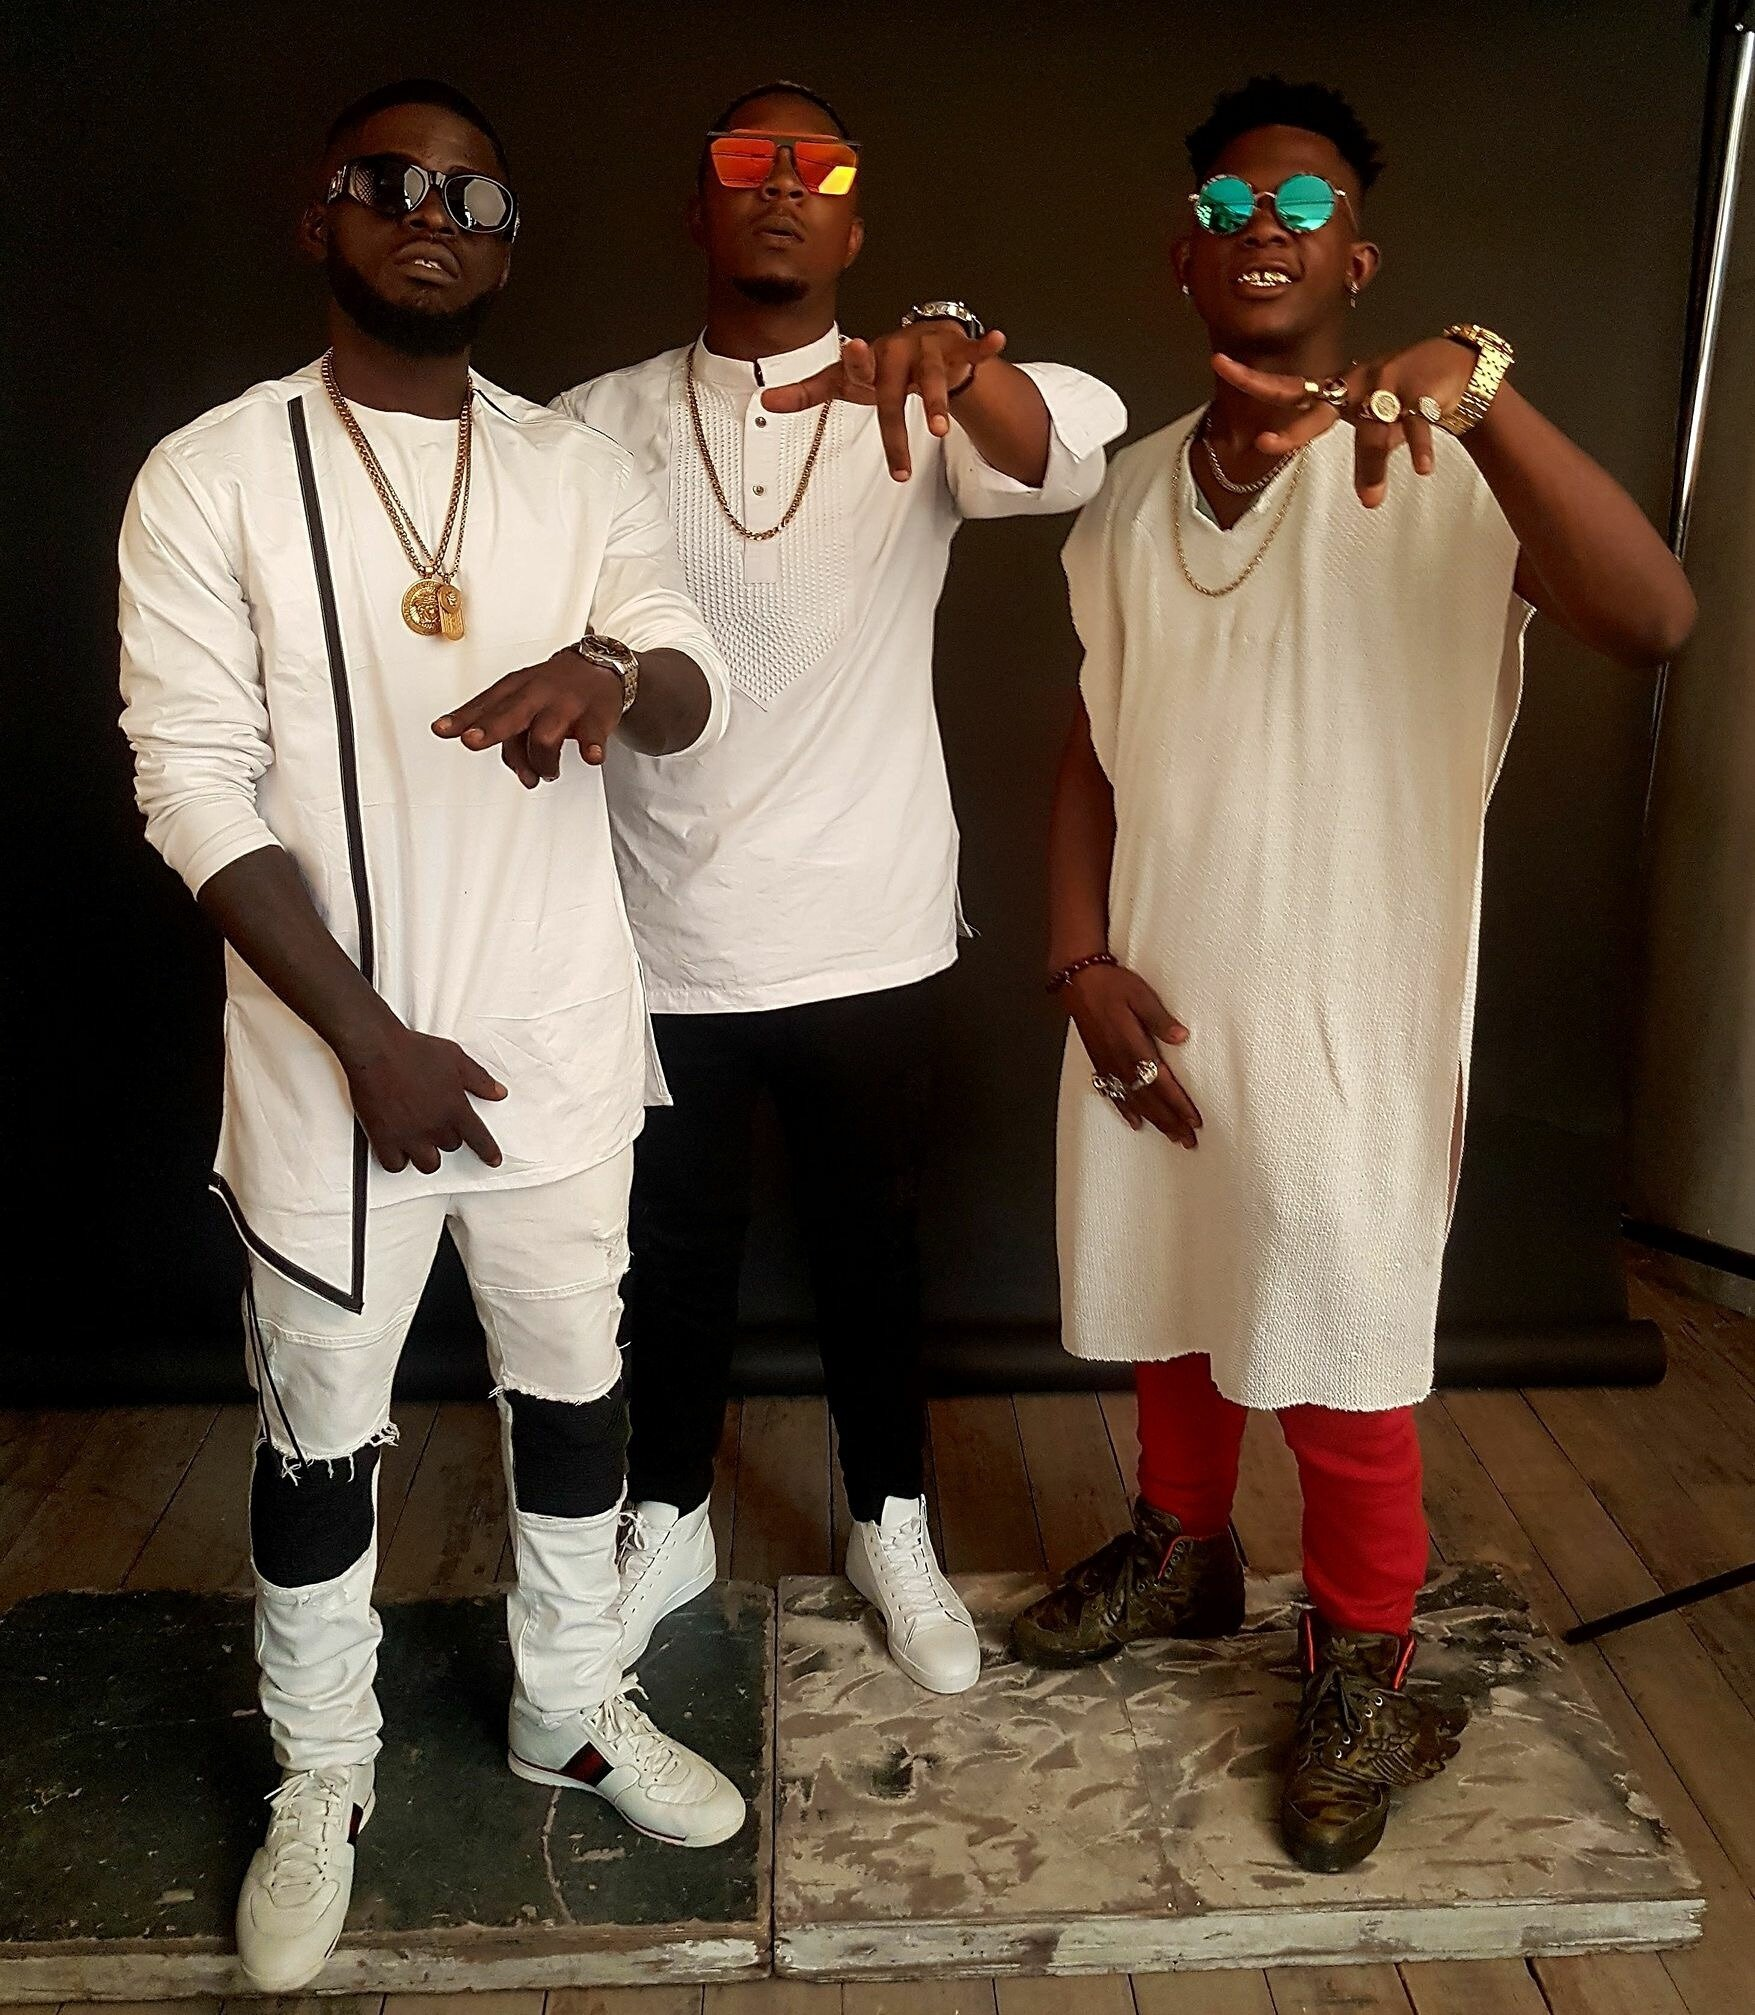 Nabil Fongod, Stanley Enow And Tenor Get Together To Fight Violence Against Women